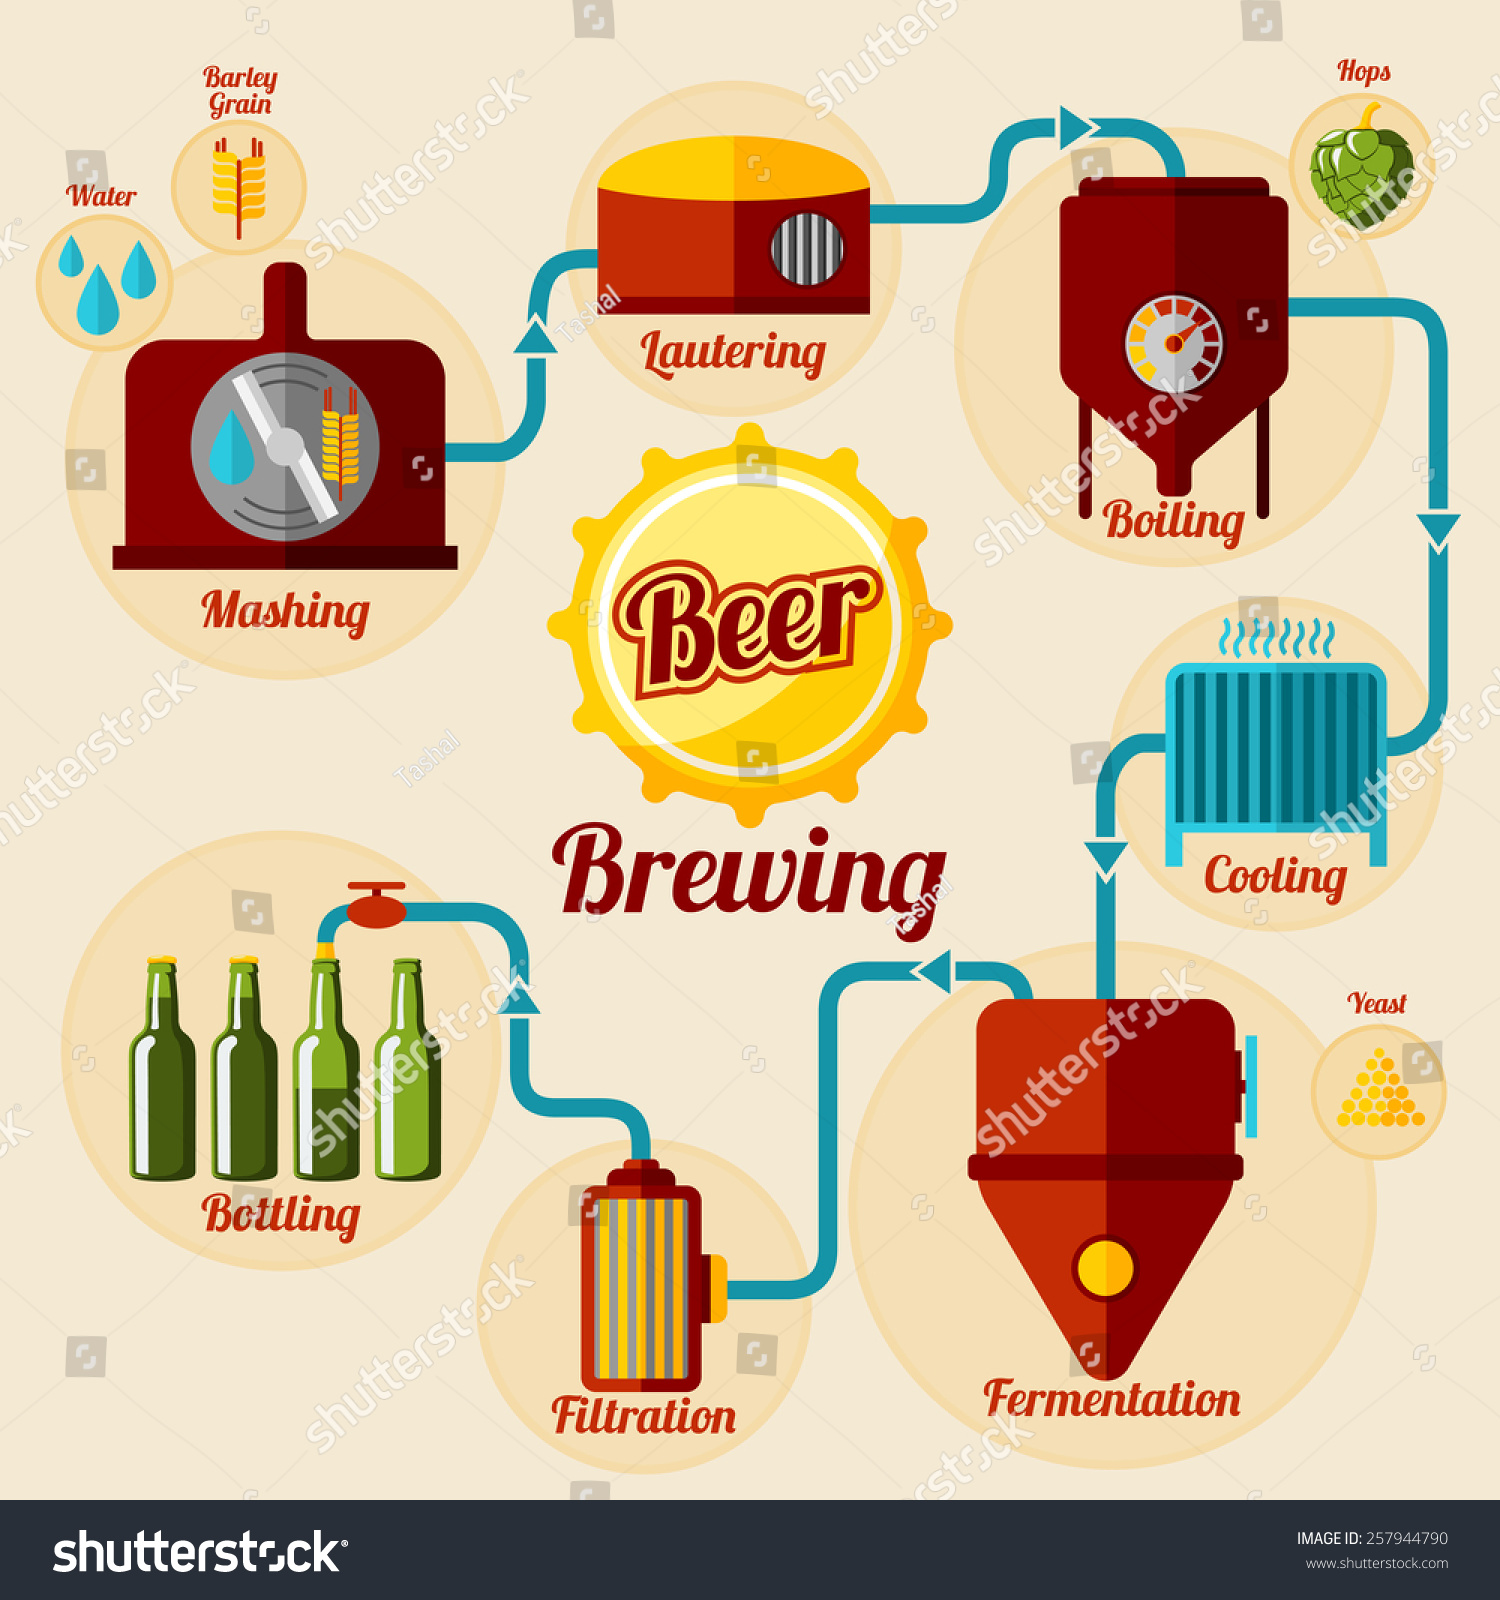 Beer Brewing Process Infographic Flat Style Stock Vector 257944790 ...